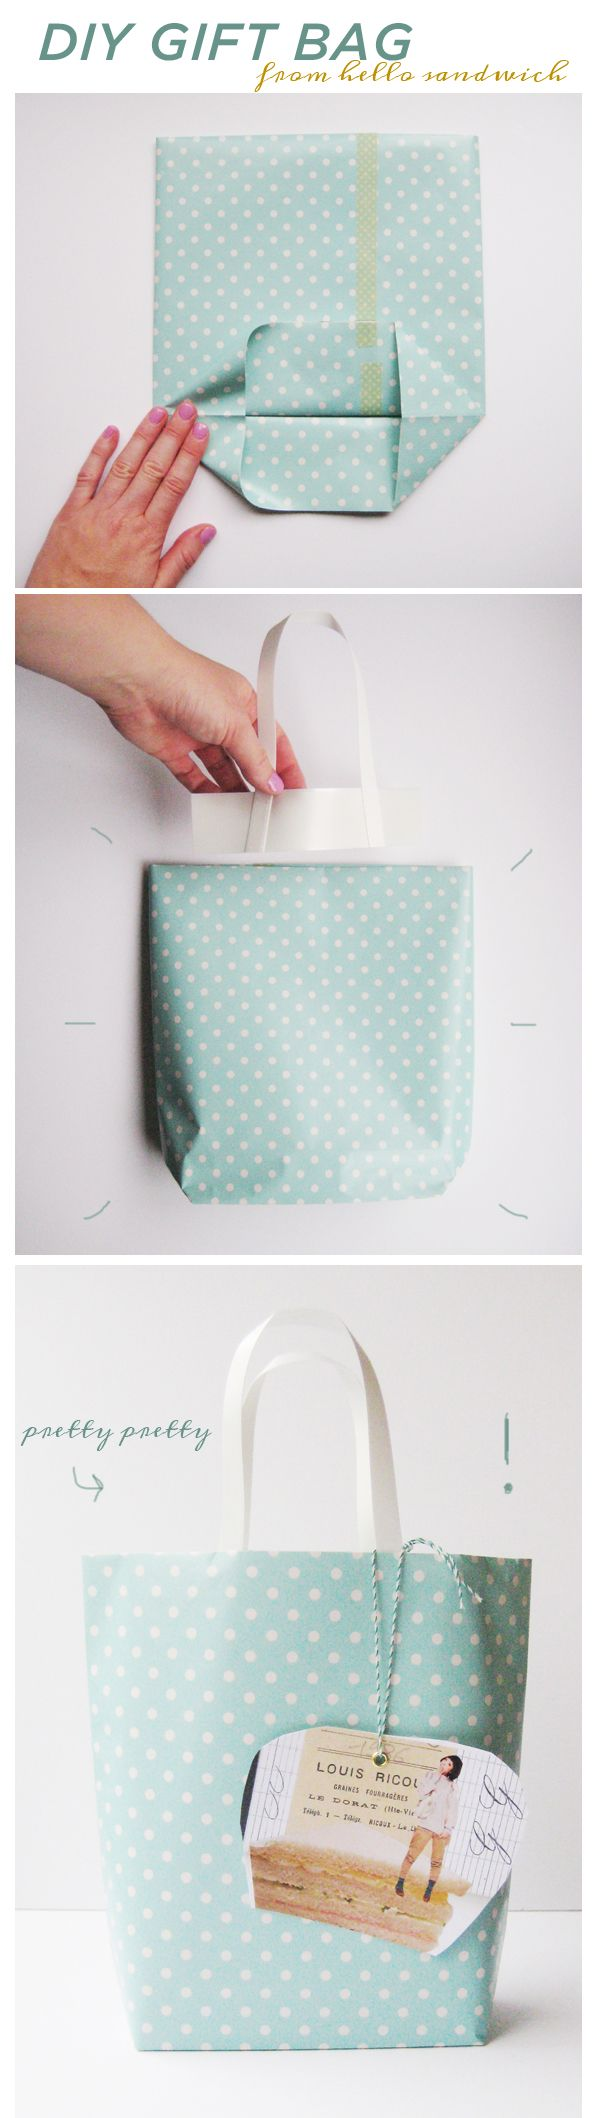 homemade bags/boxes out of wrapping paper.